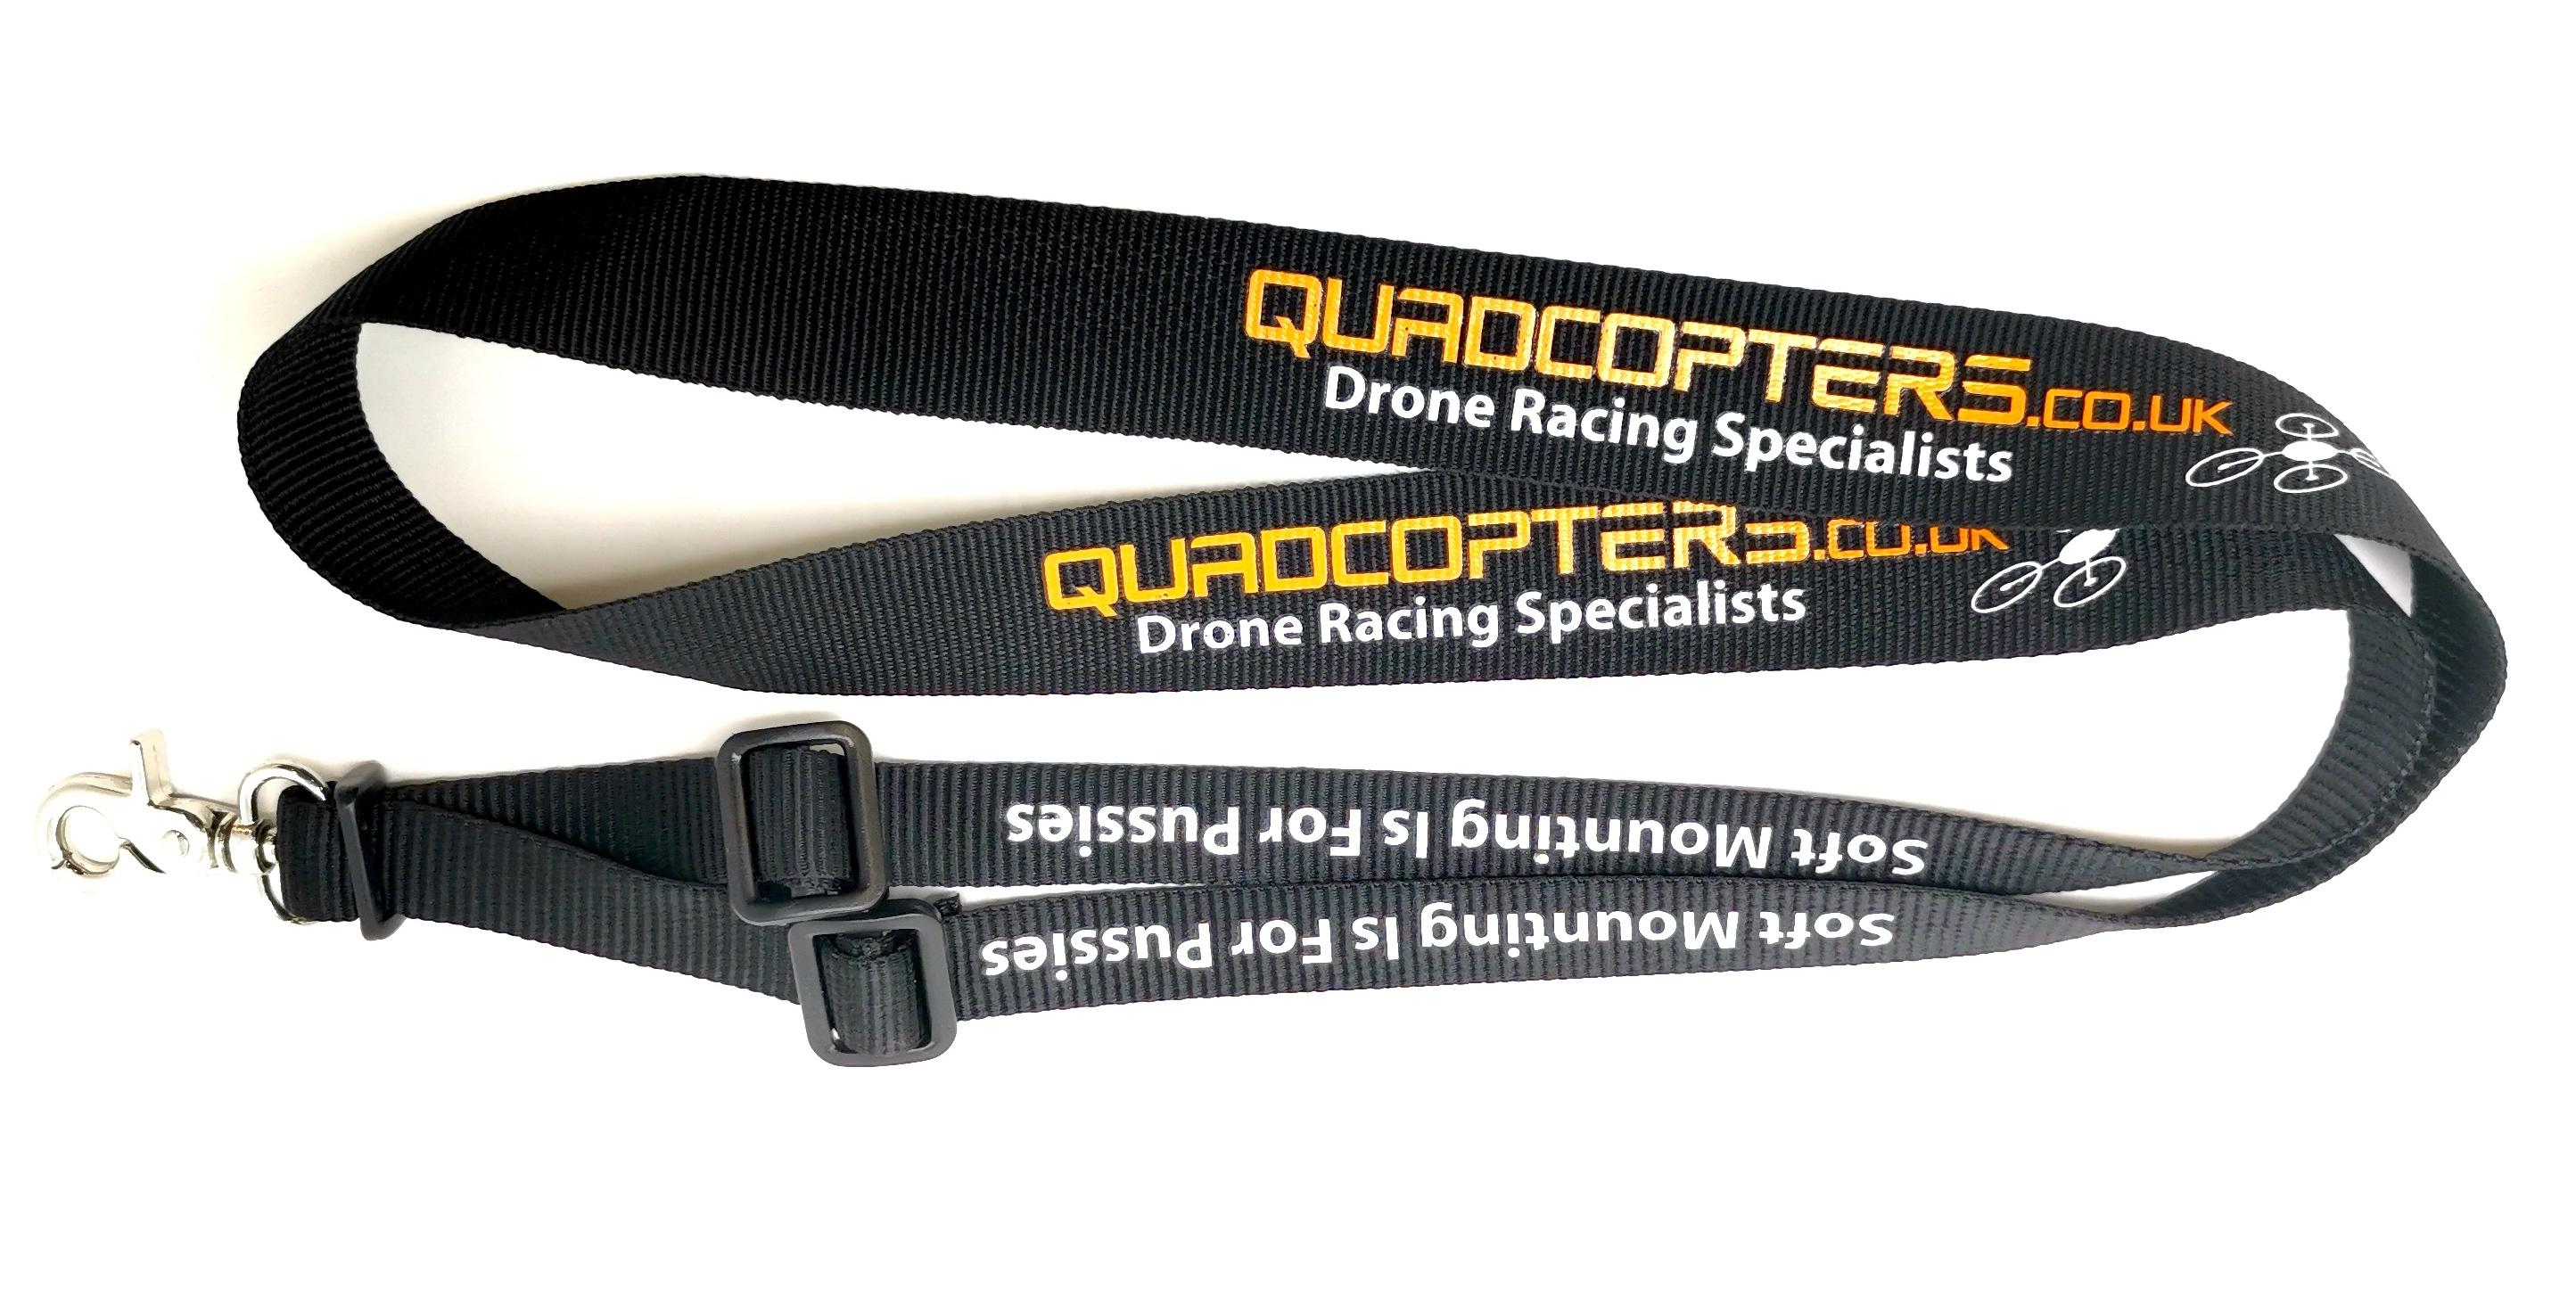 radio  strap for drone lanyard